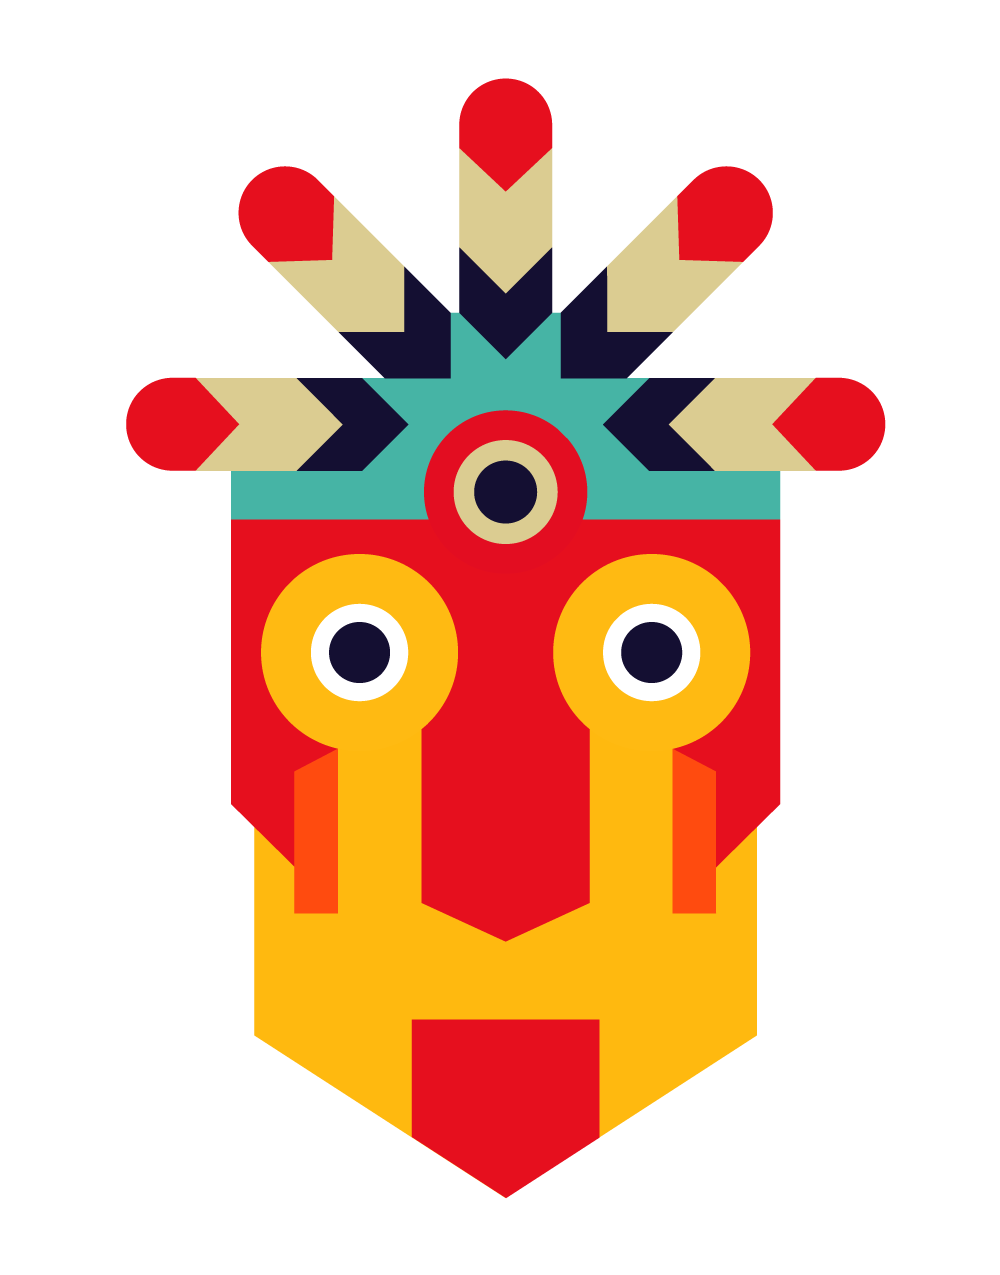 growth-tribe-mask-transparent-finland.png